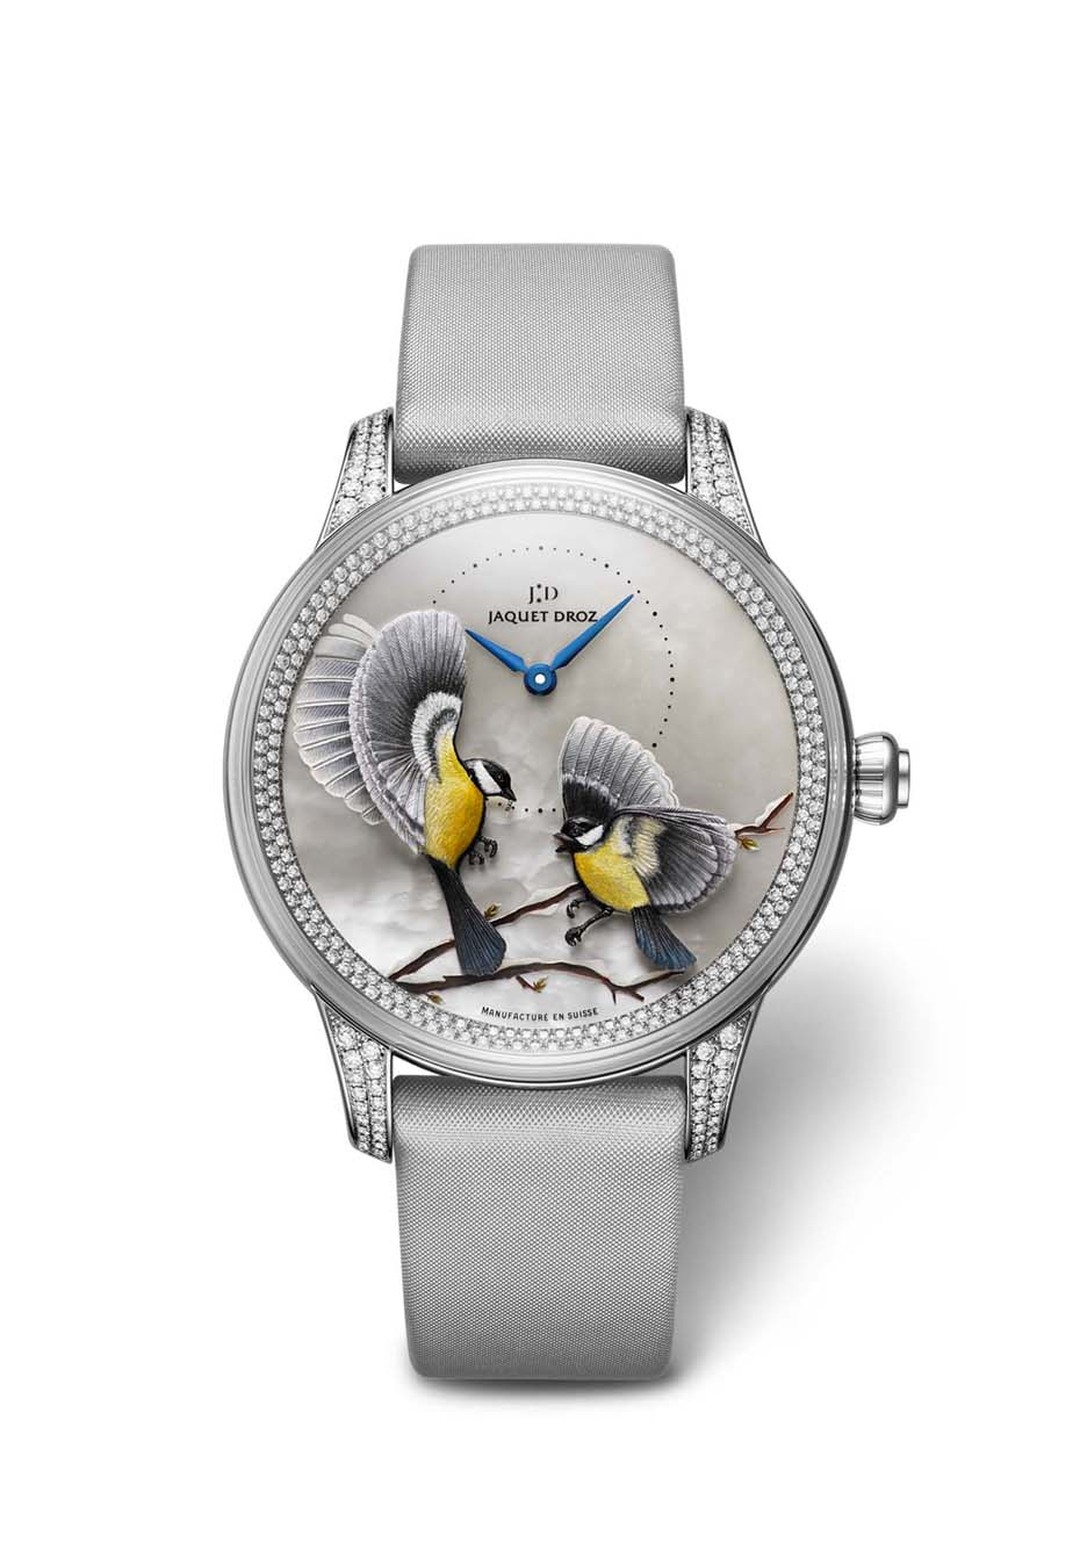 Jaquet Droz' Petite Heure Minute Relief Saisons watch features birds that were sculpted and engraved in gold before being applied to the dial and painted by hand.